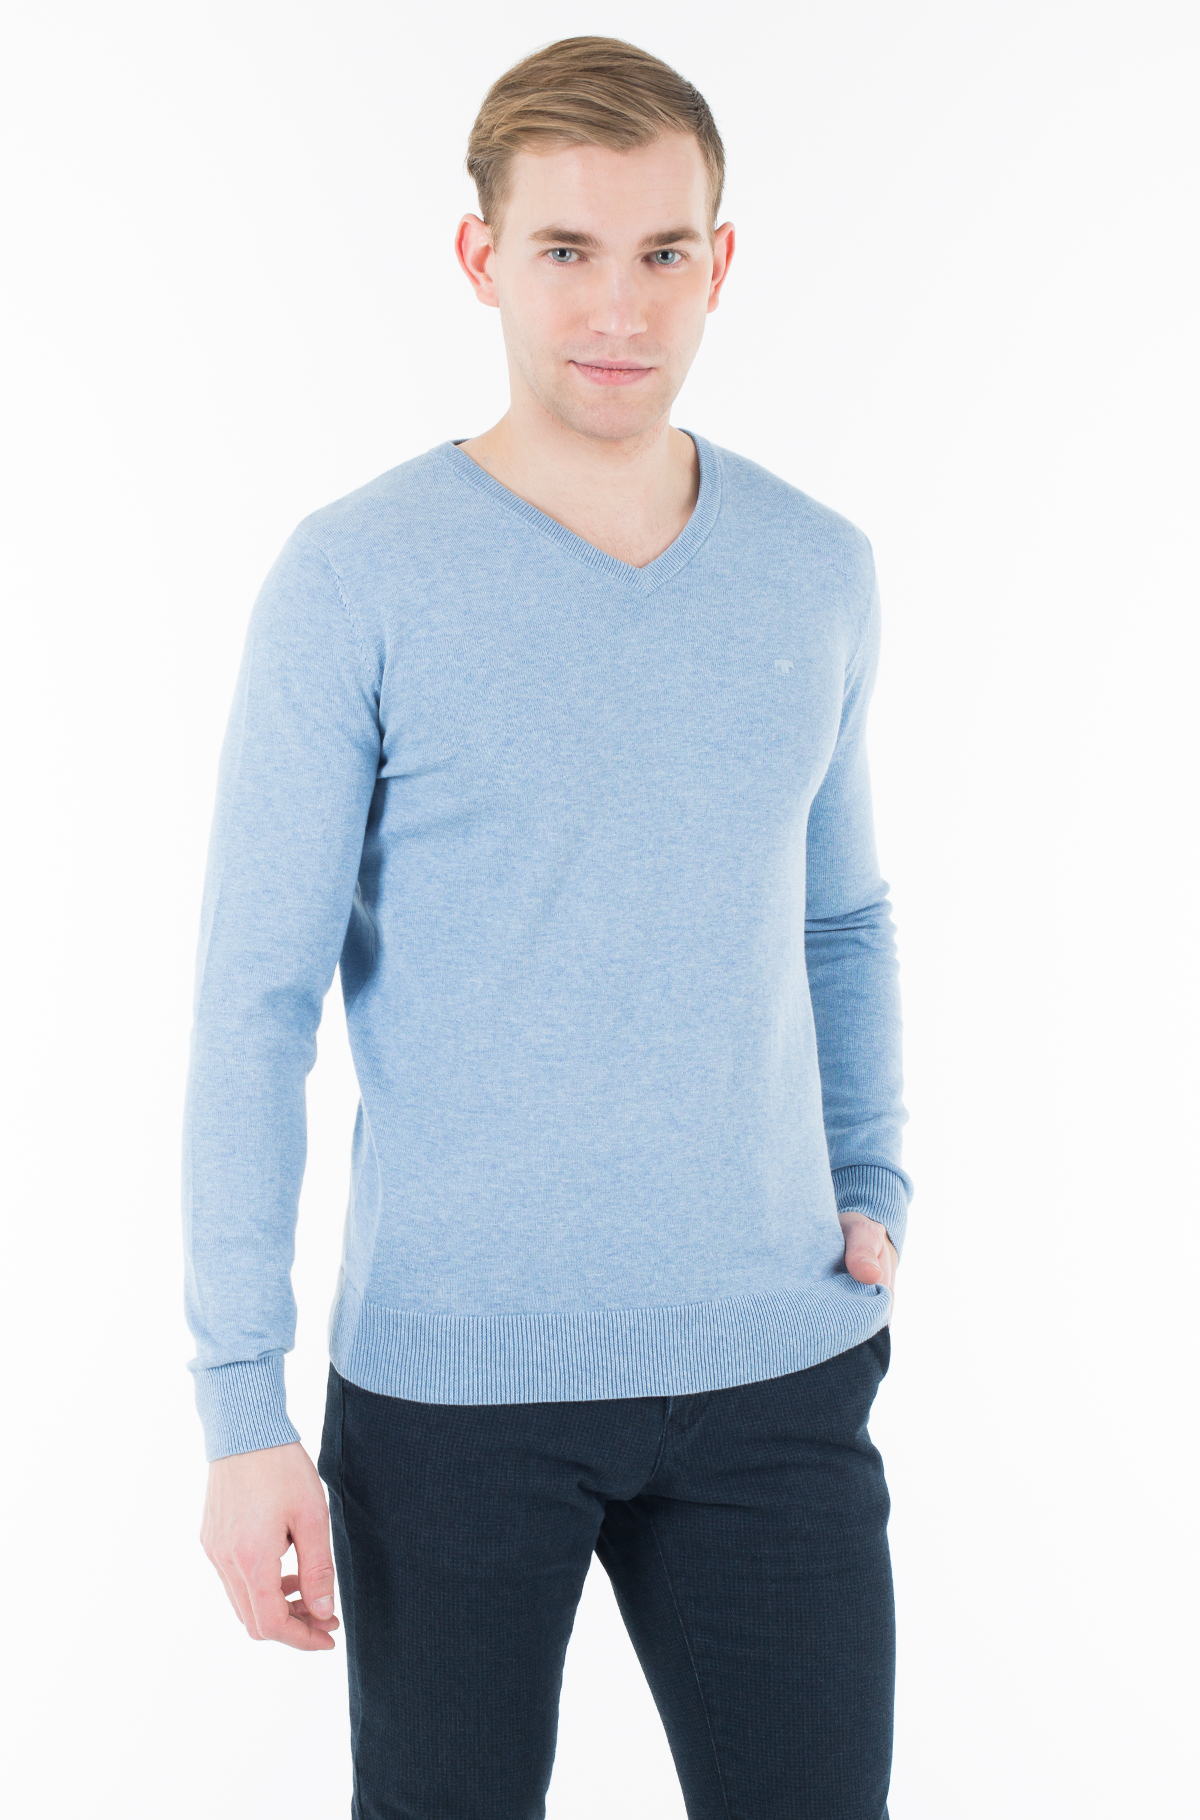 Sweater 3022881 09 10 Tom Tailor Mens Knitwear Denim Dream E Pood Sweater 3022881 09 10 Tom Tailor Mens Knitwear Denim Dream E Pood